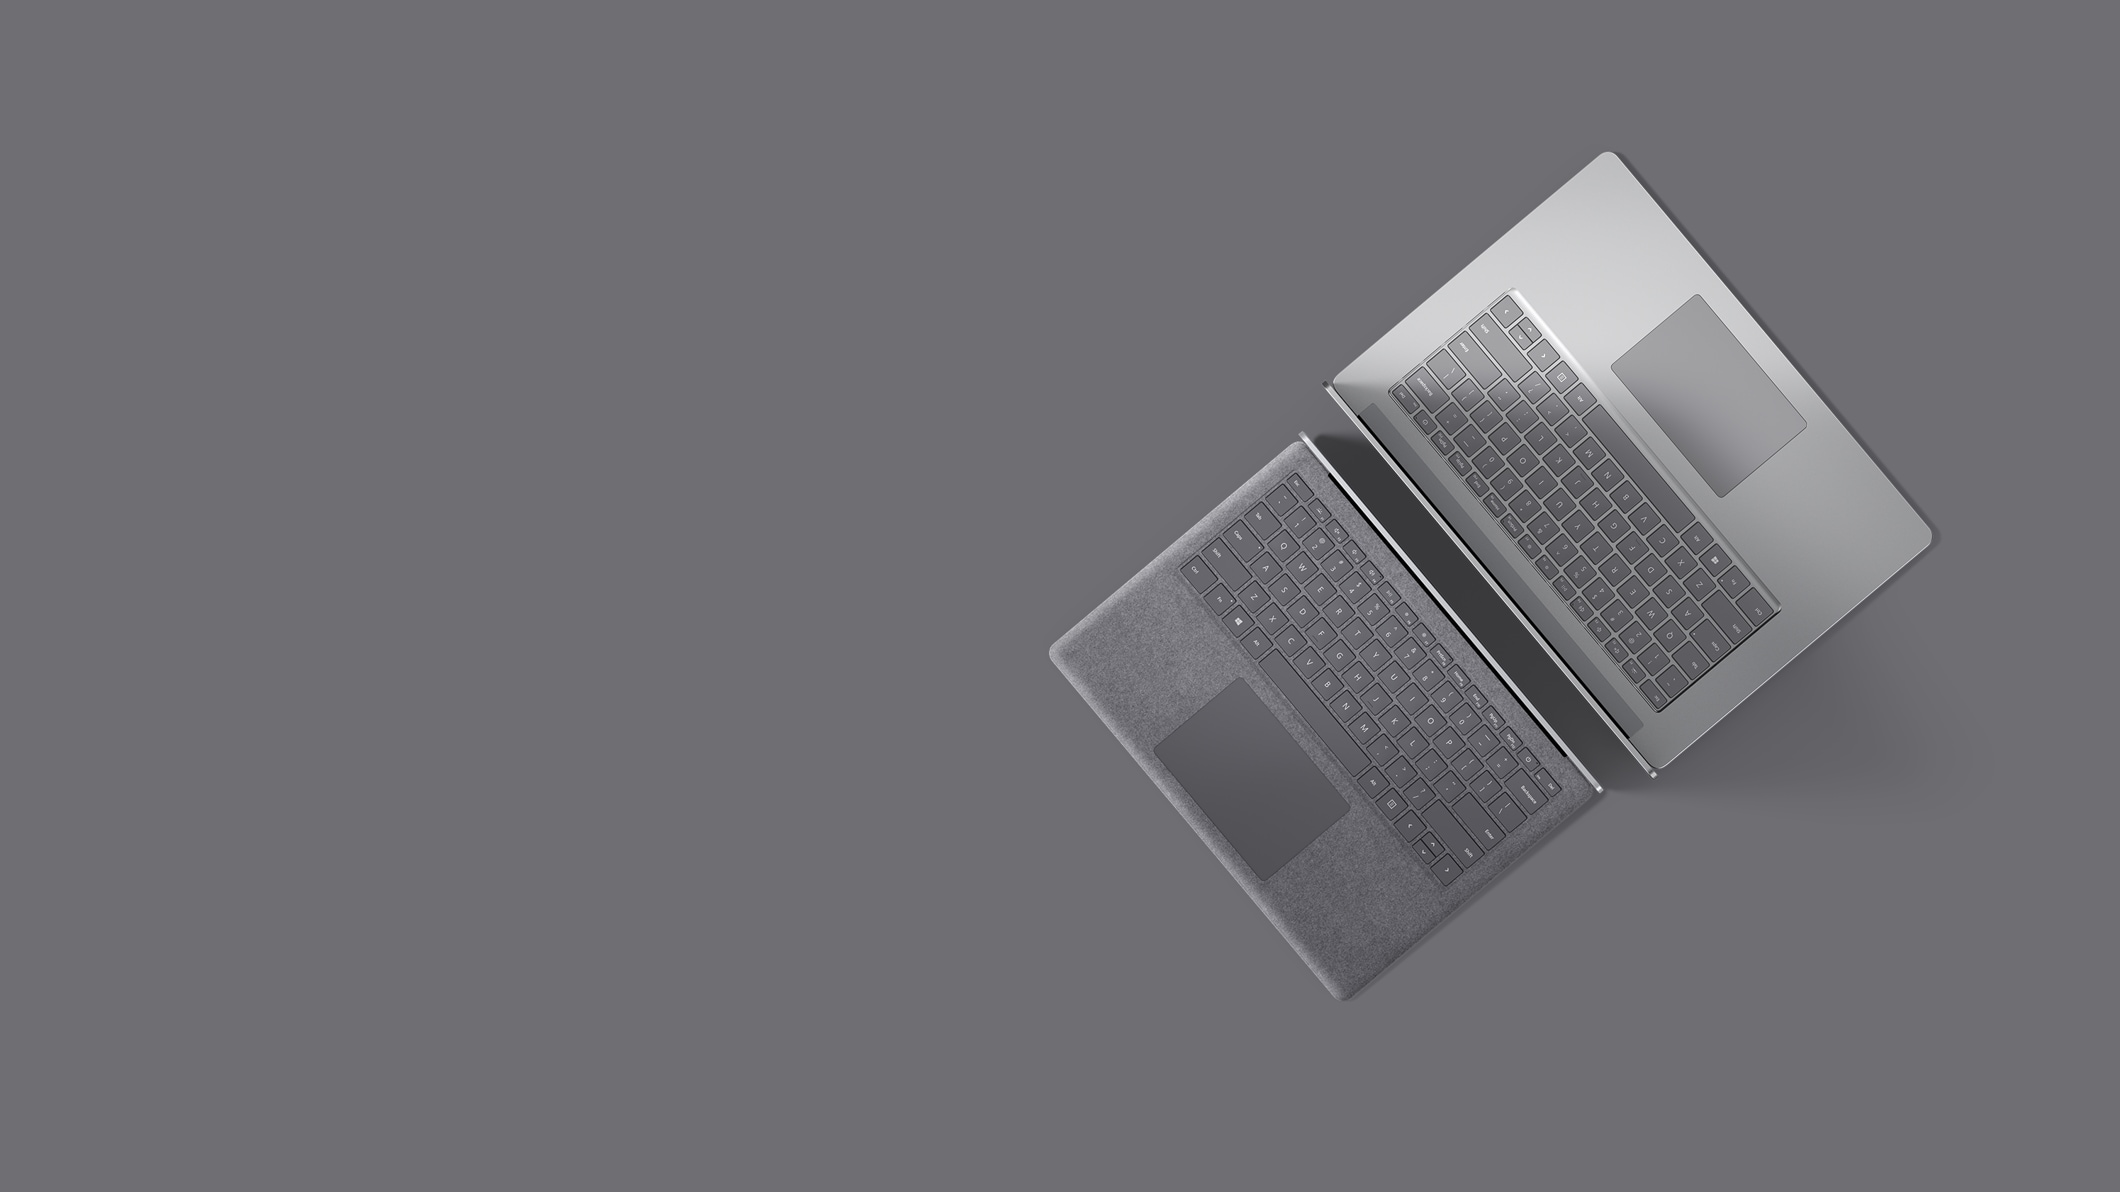 Surface Laptop 4 for Business in Platinum.